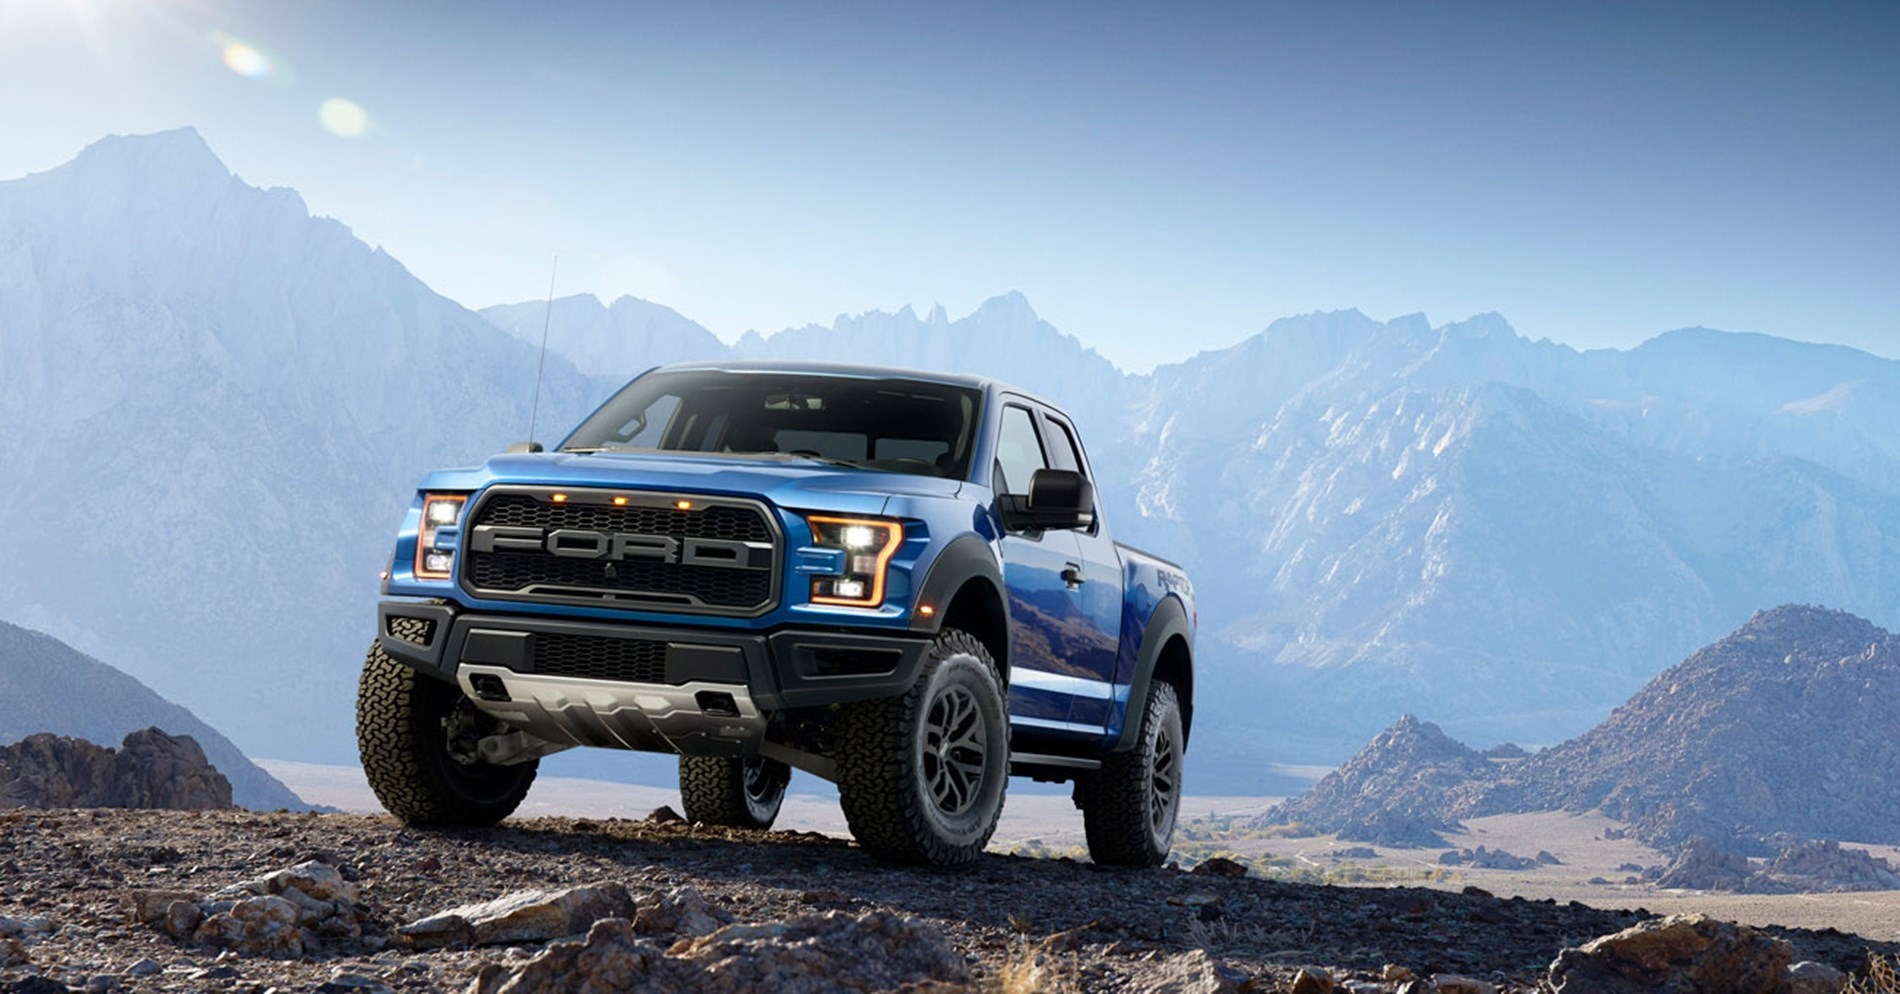 Ford F 150 Raptor Price In Qatar New Ford F 150 Raptor Photos And